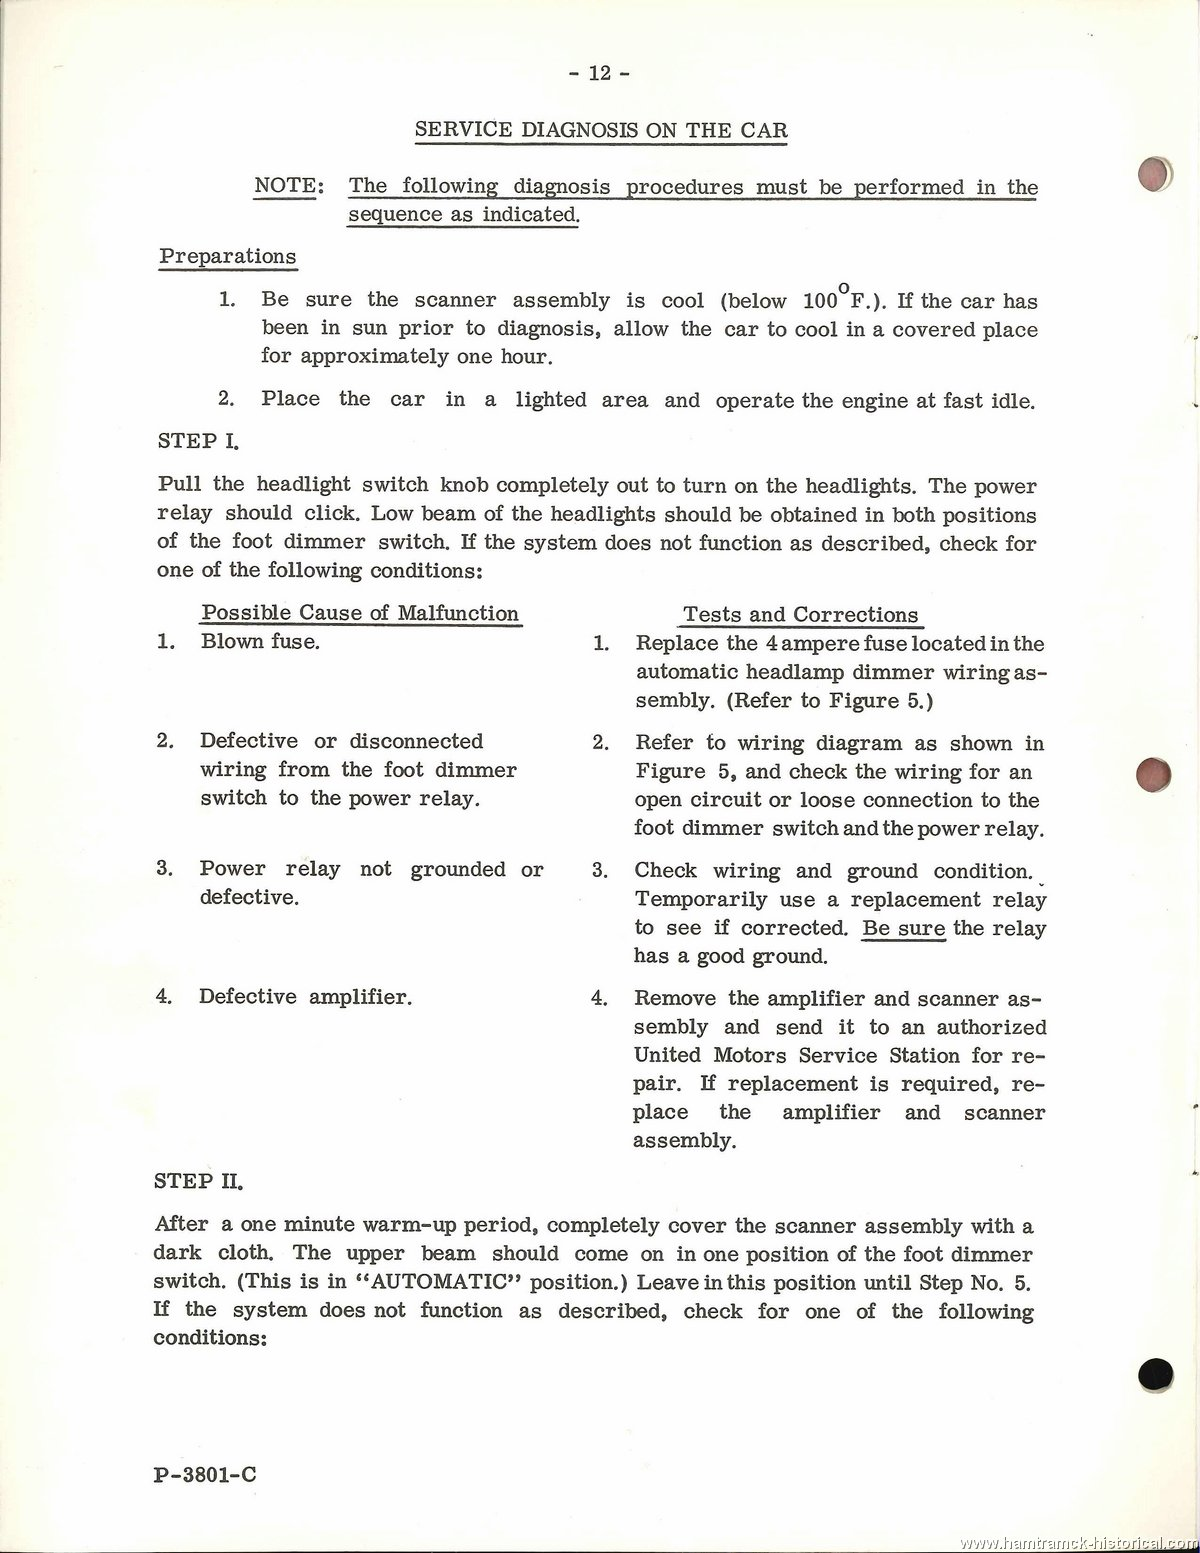 The 1970 Hamtramck Registry 1966 Tsbs And Related Material Index Page Chrysler Wiring Diagram 14 15